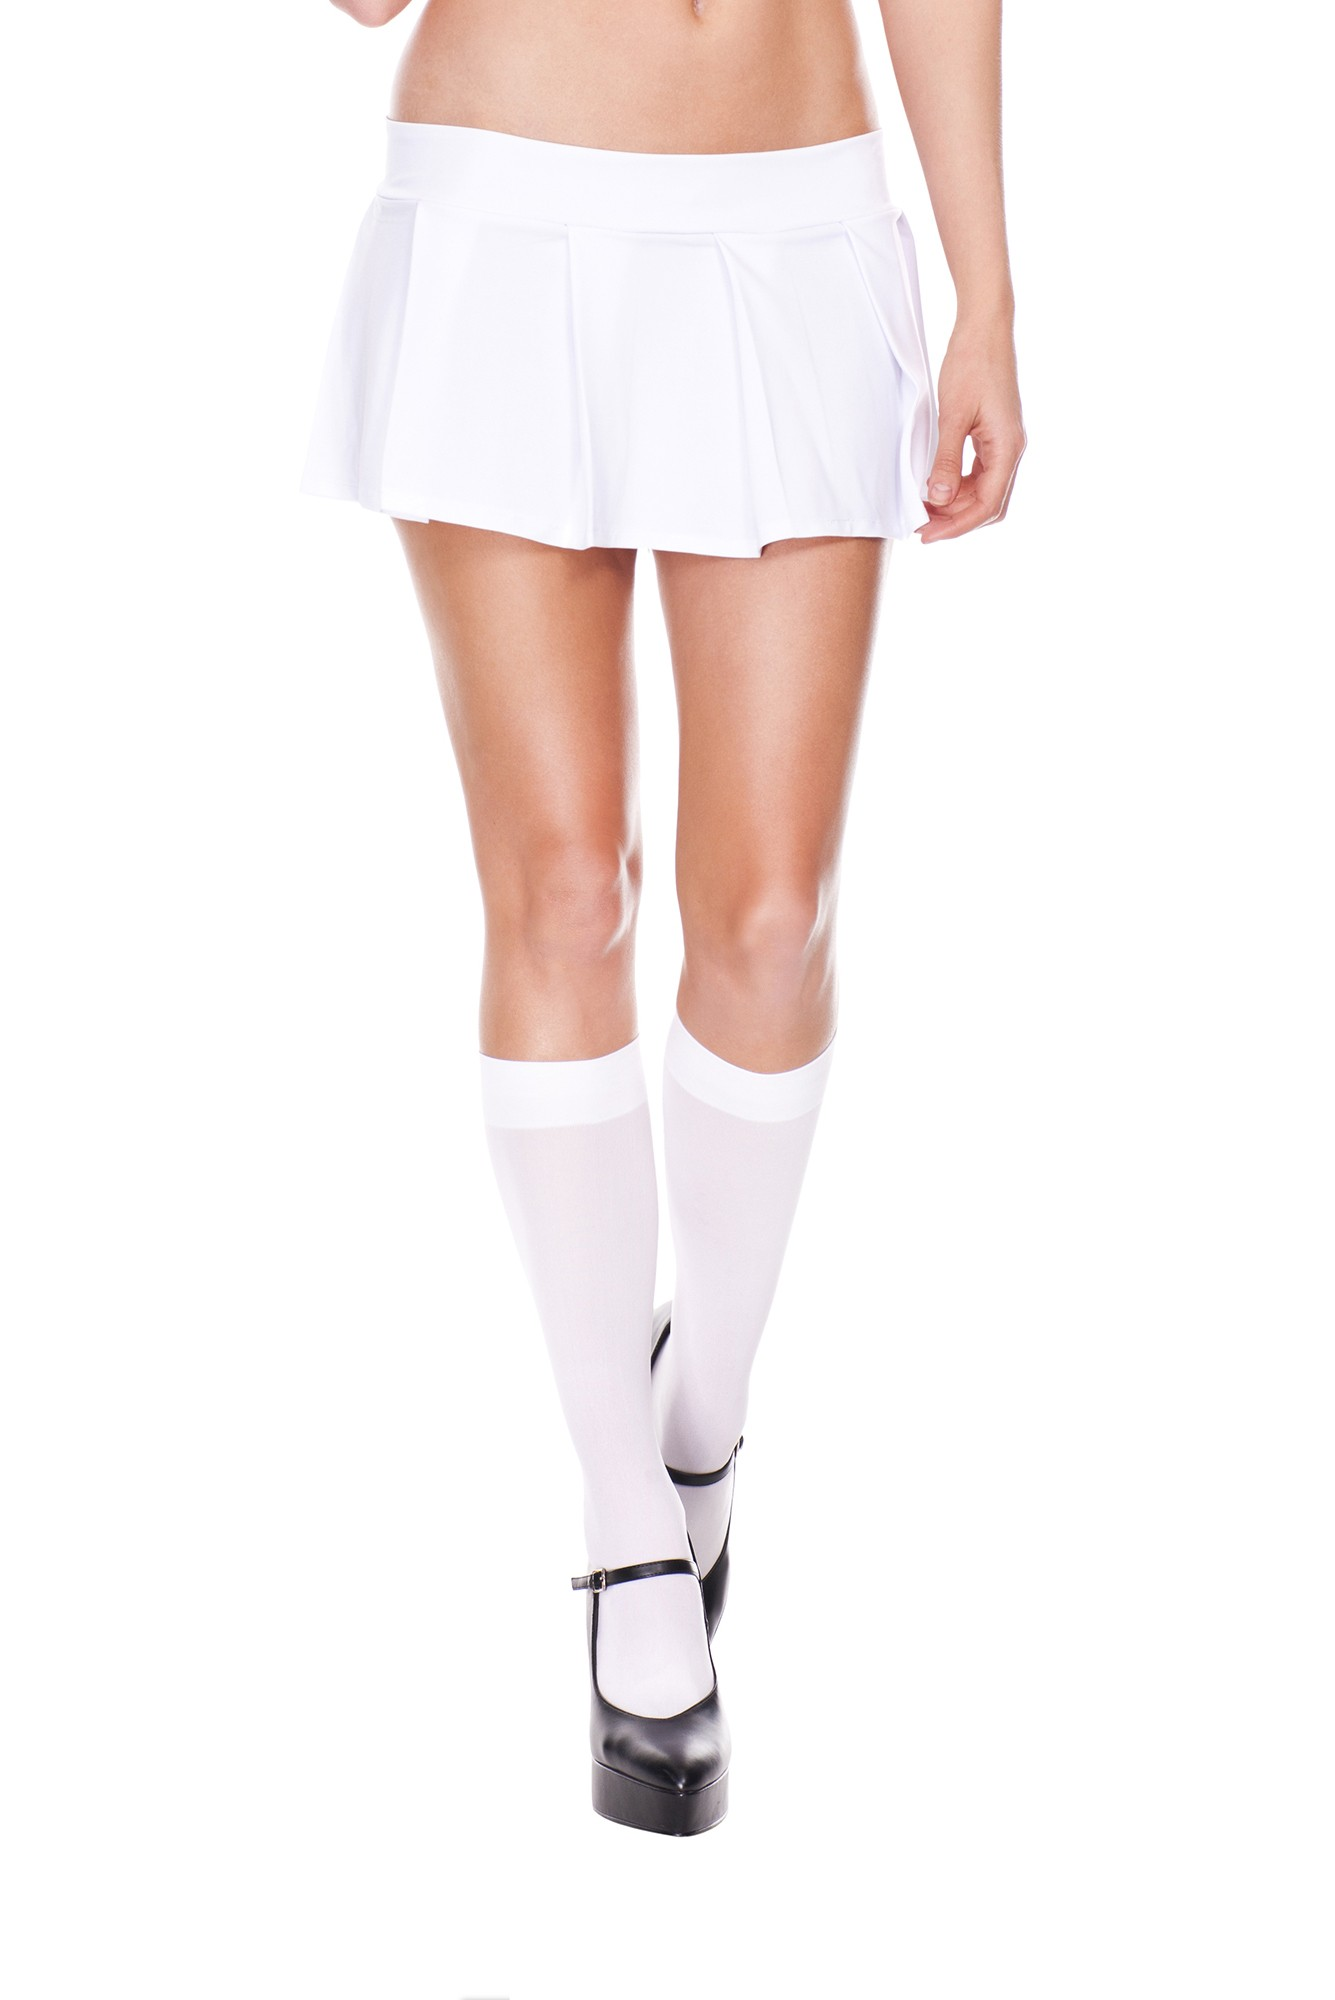 Pleated spandex mini skirt white 25075 Edmonton